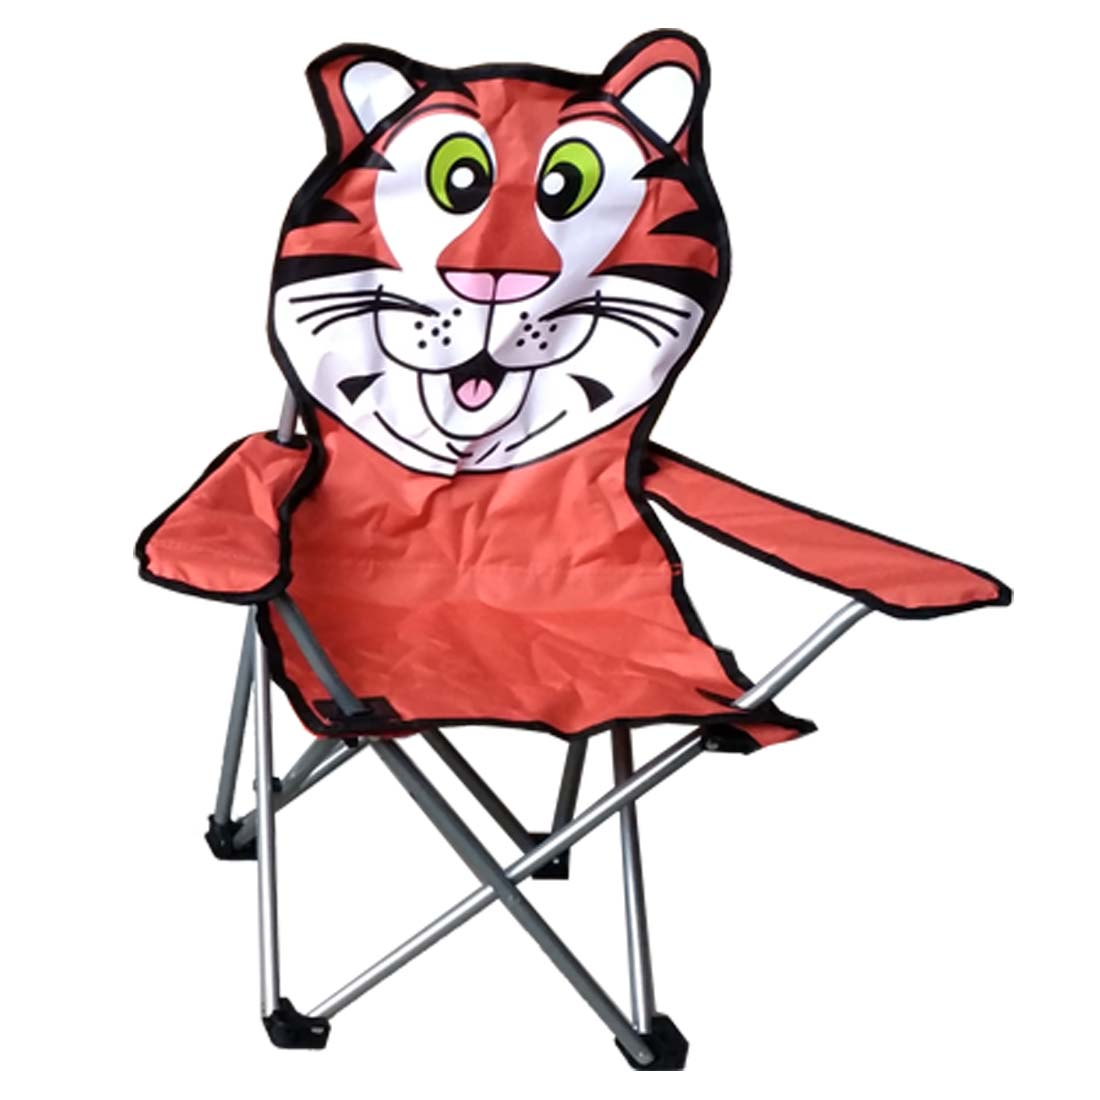 View KIDS CAMPING CHAIR 14 X 14 X 26 INCH TIGER DESIGN